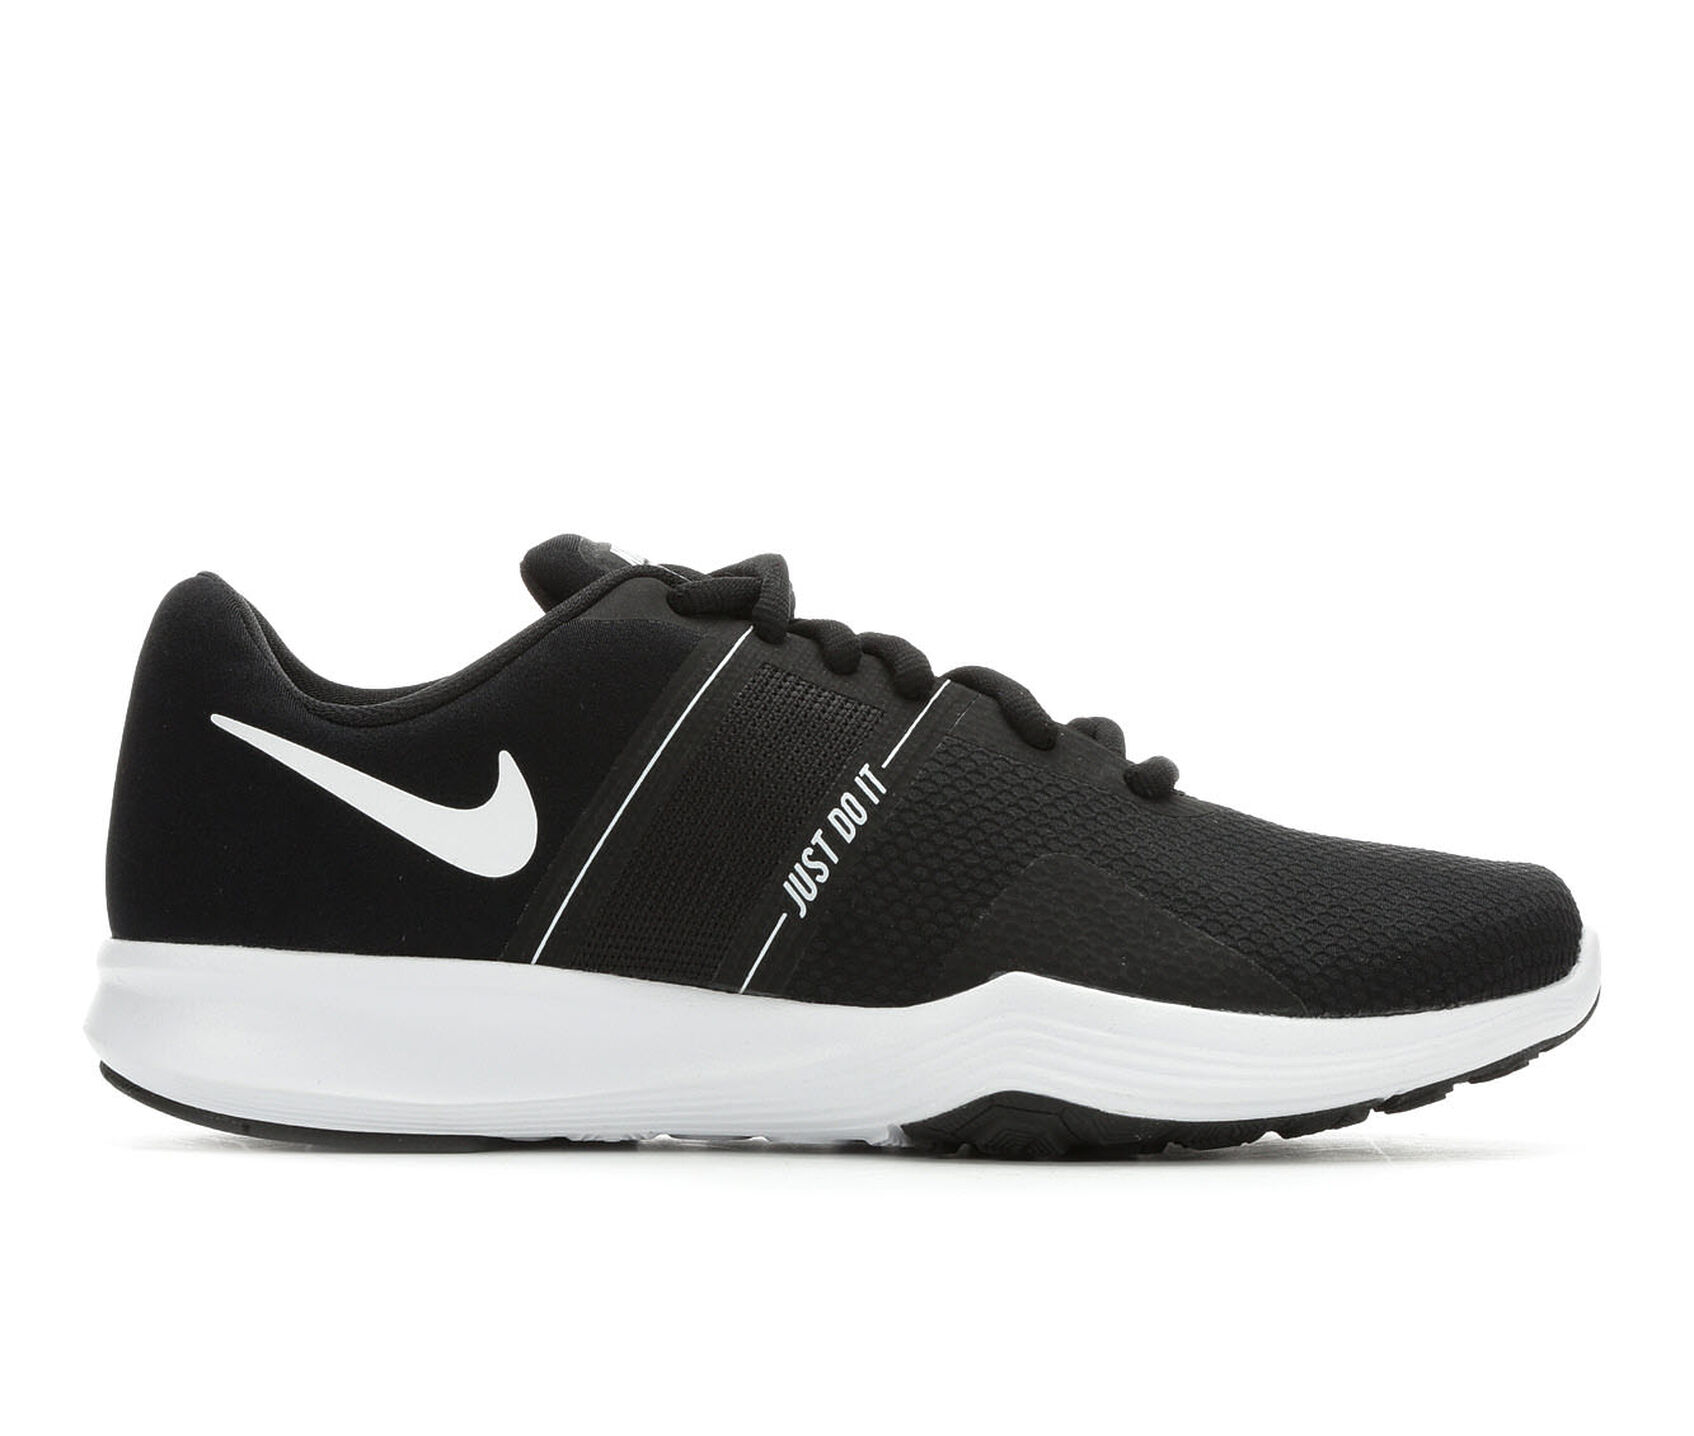 070adfe4e ... Nike City Trainer 2 Training Shoes. Previous